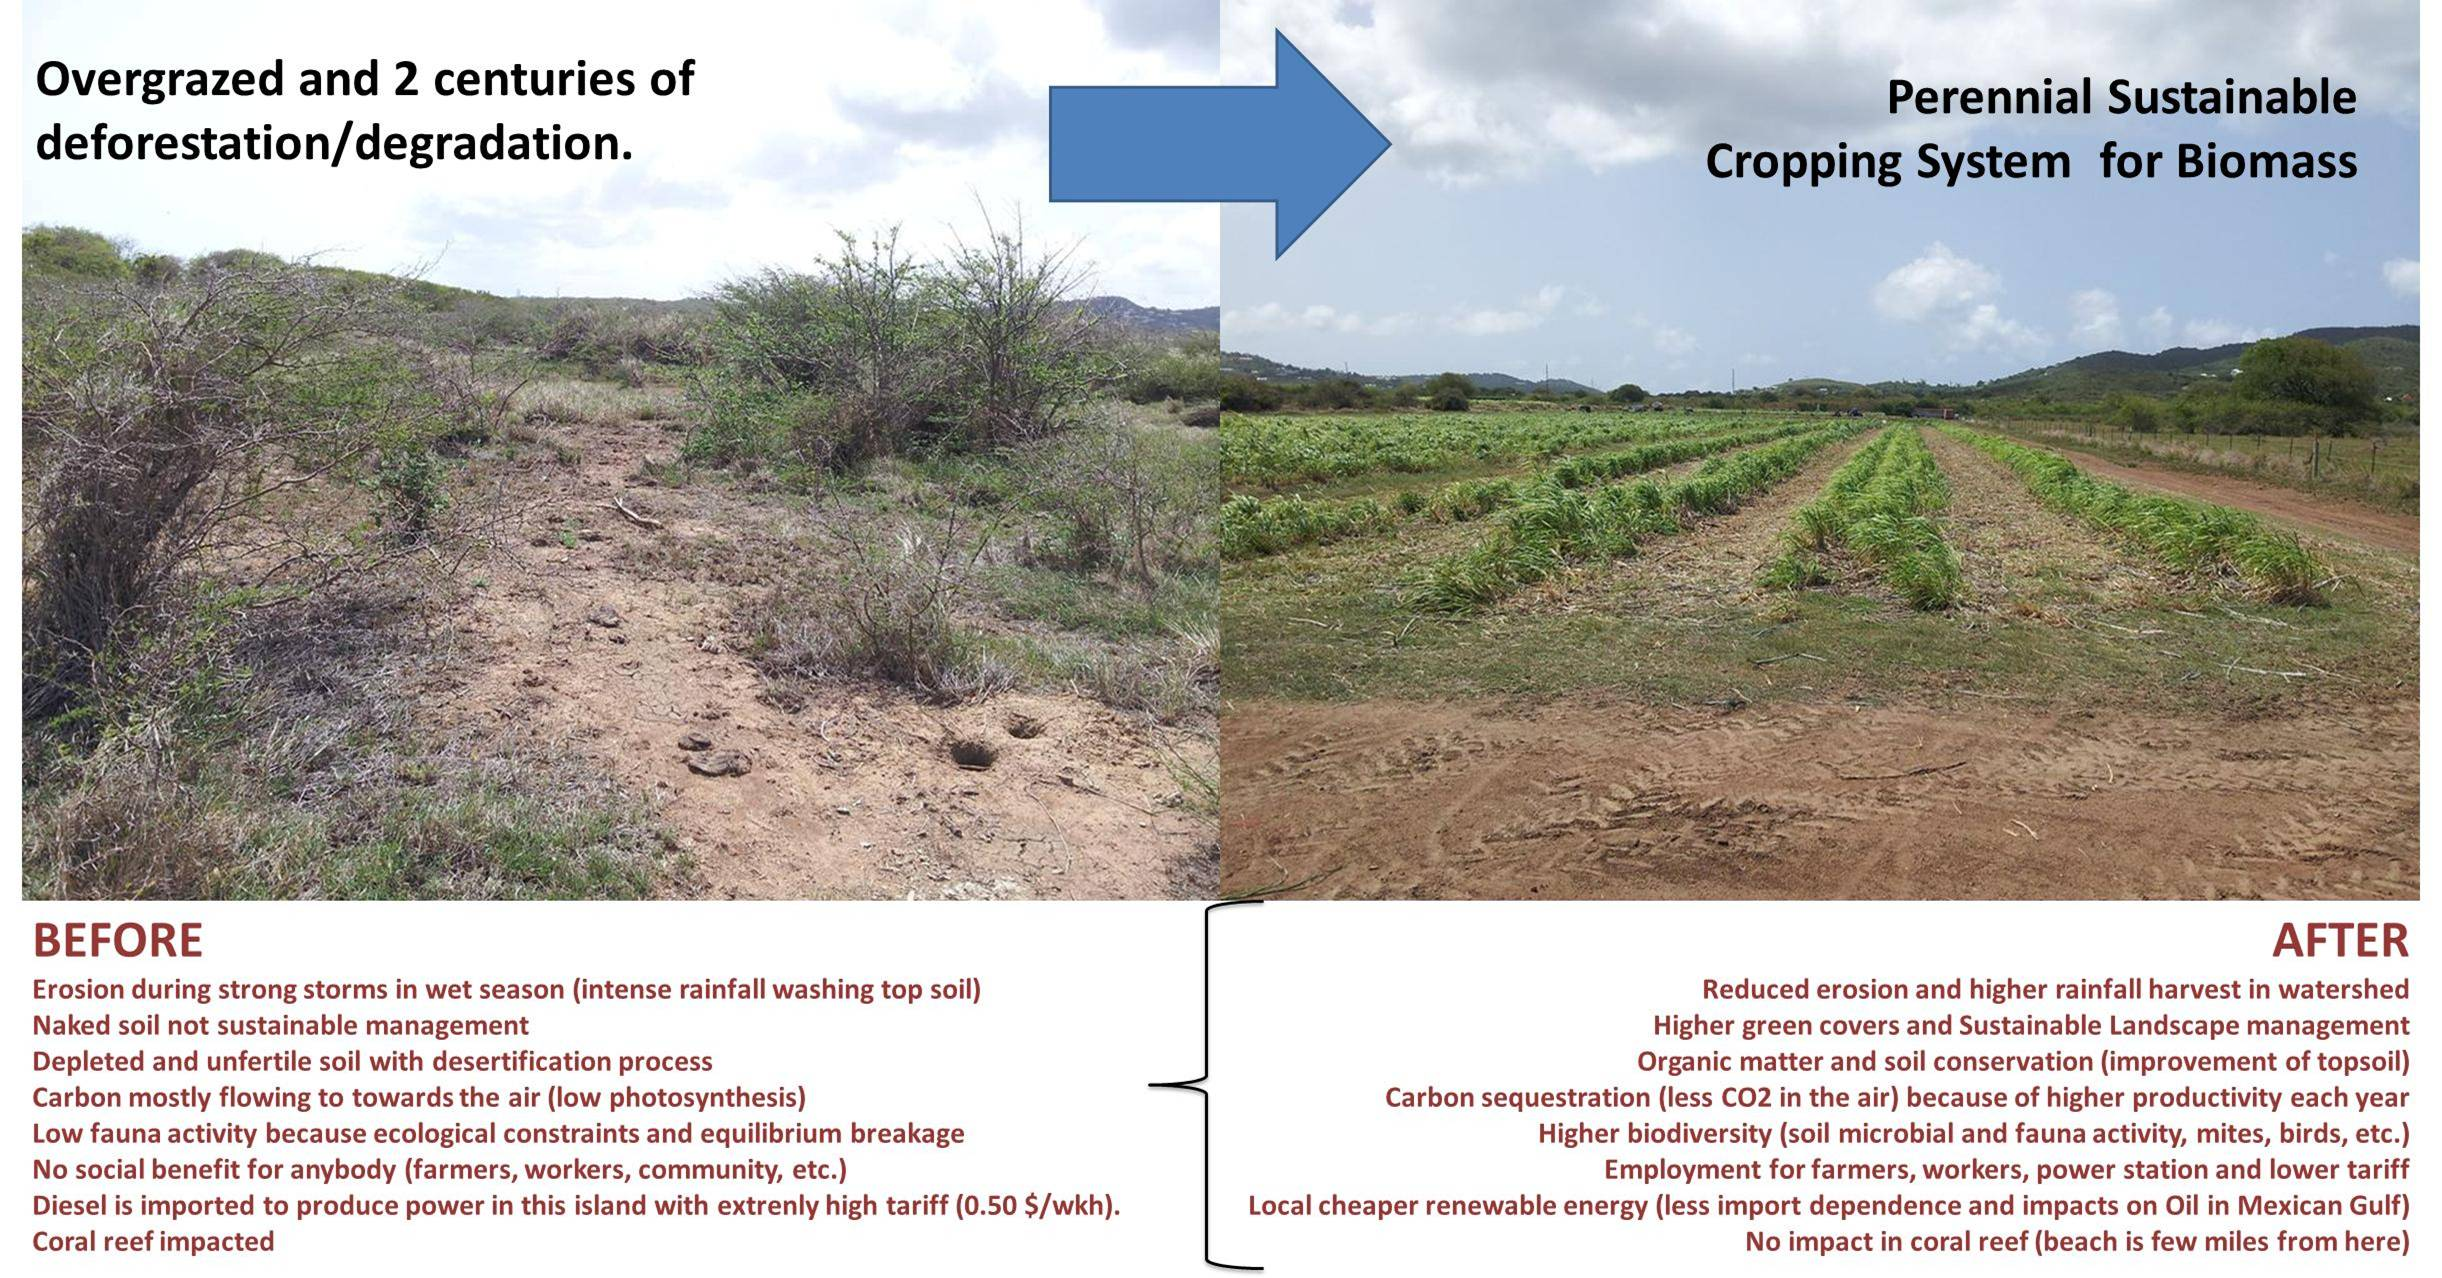 http://bioenergycrops.com/wp-content/uploads/2014/09/sustainable-perennial-bioenergy-cropping-systems.jpg